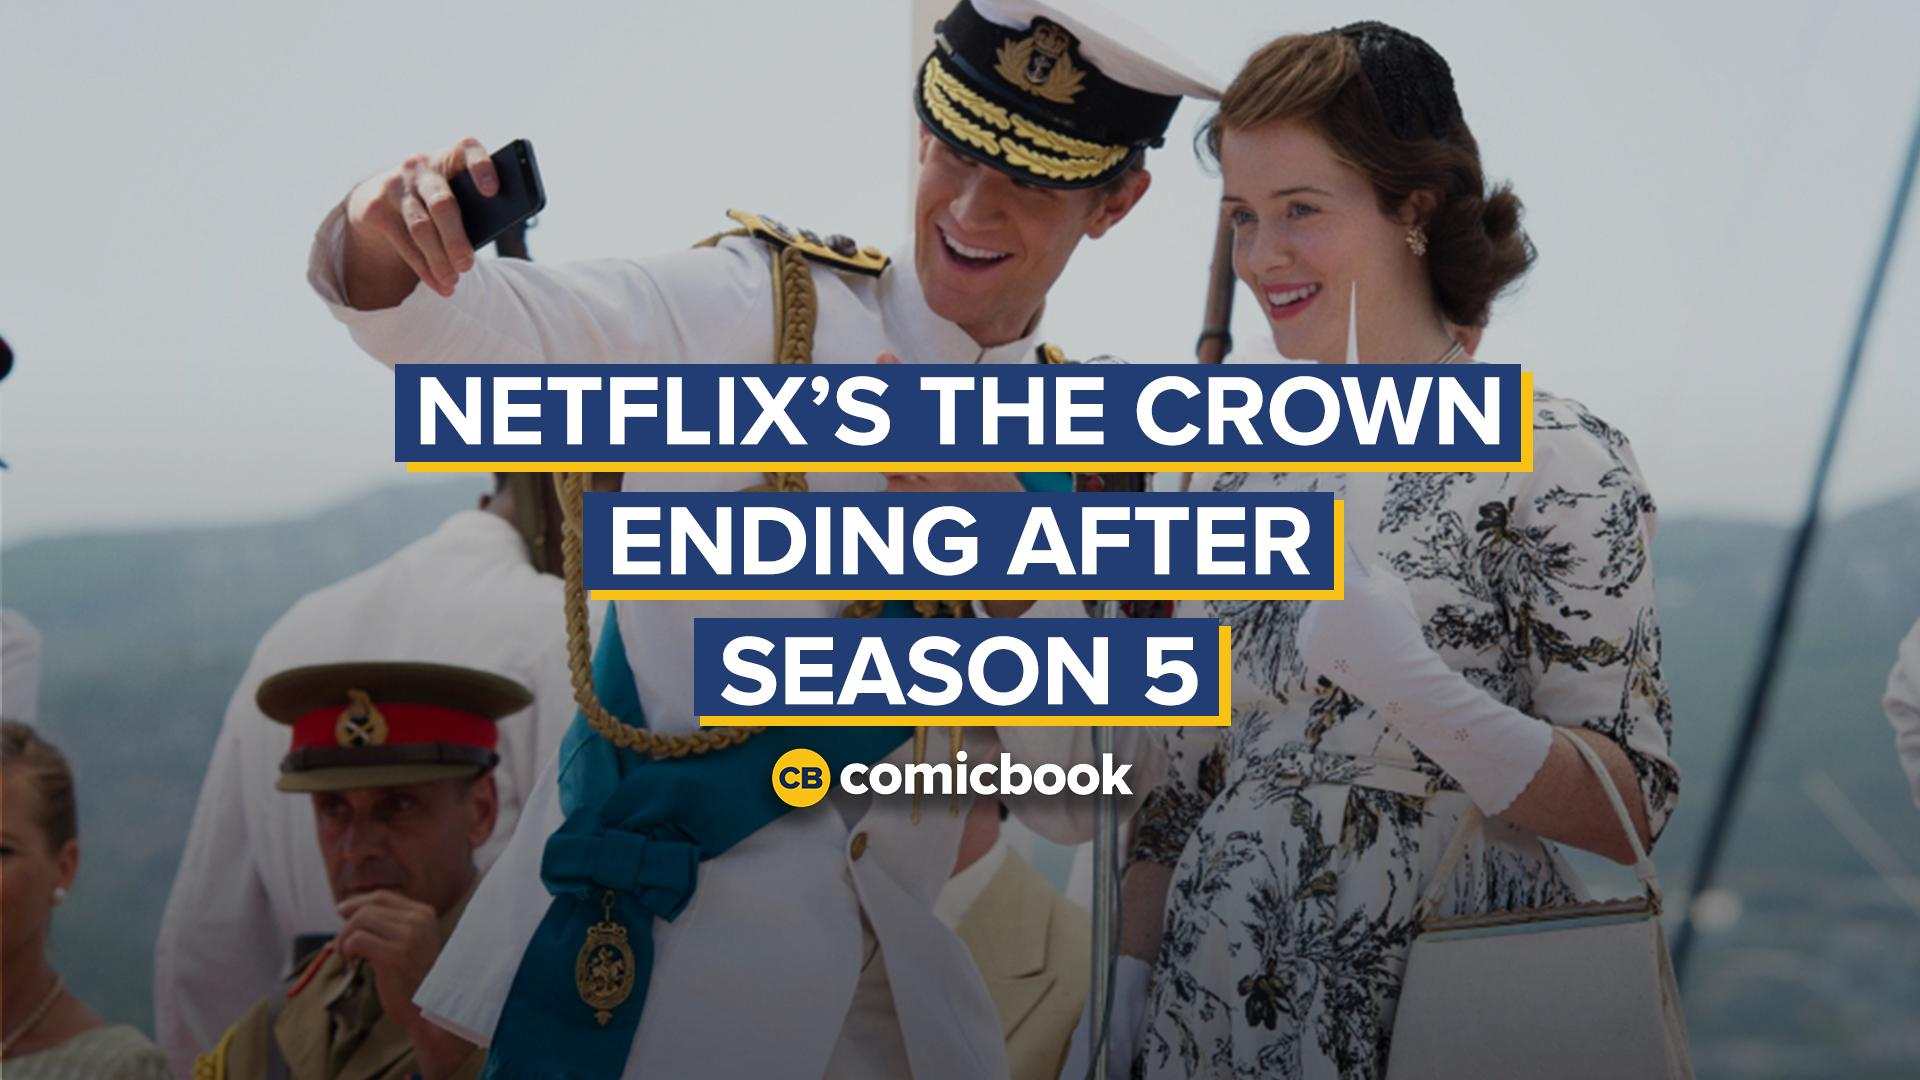 Netflix's The Crown Ending After Season 5 screen capture